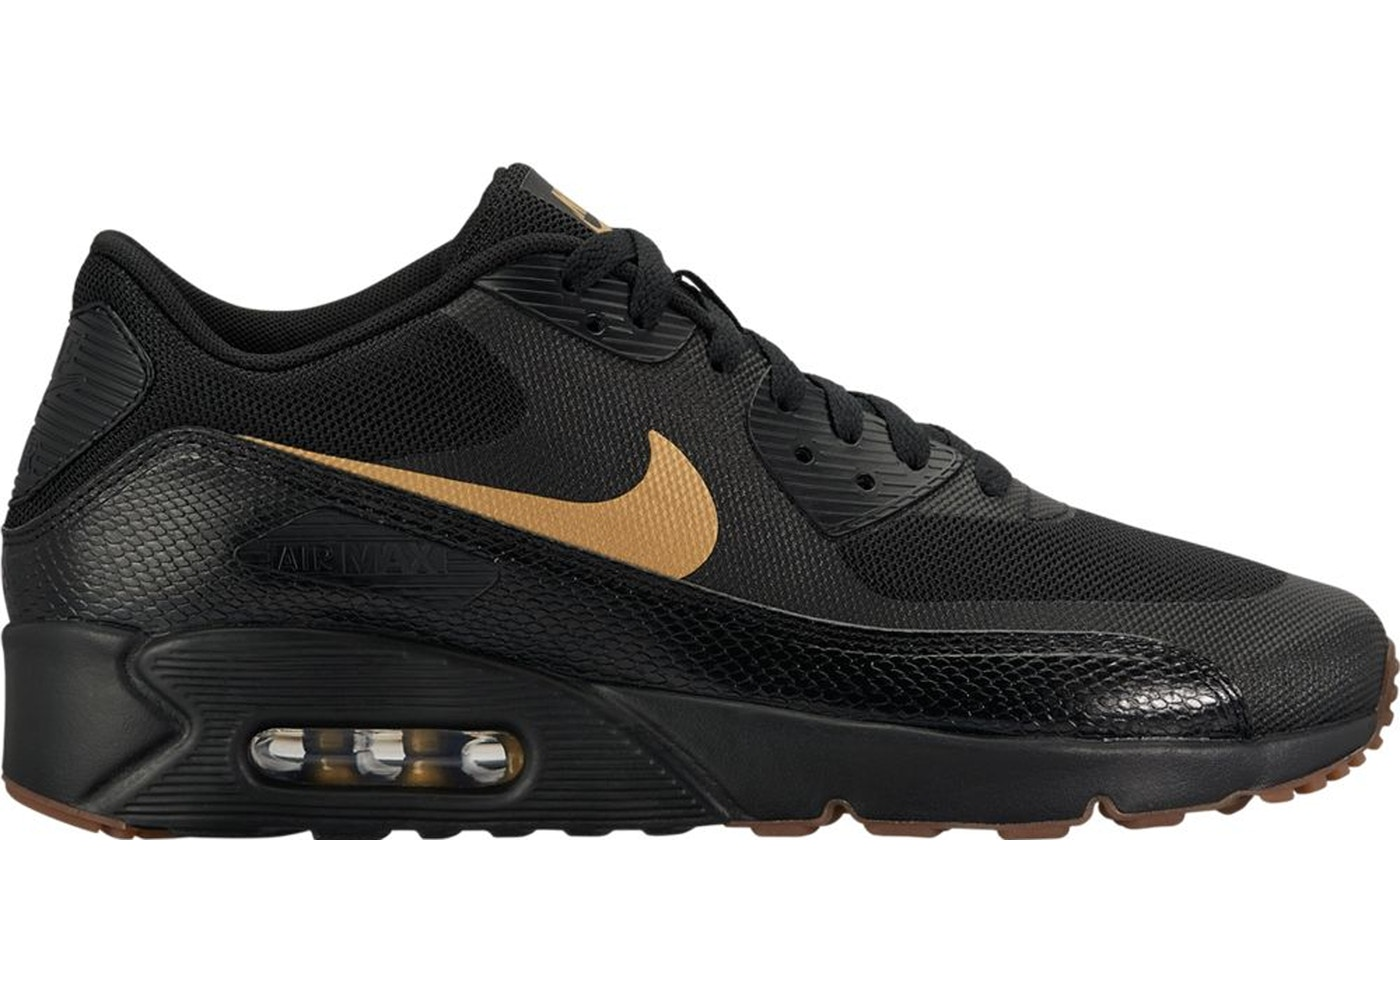 the best attitude d4693 200ec Air Max 90 Ultra 2.0 Black Gold